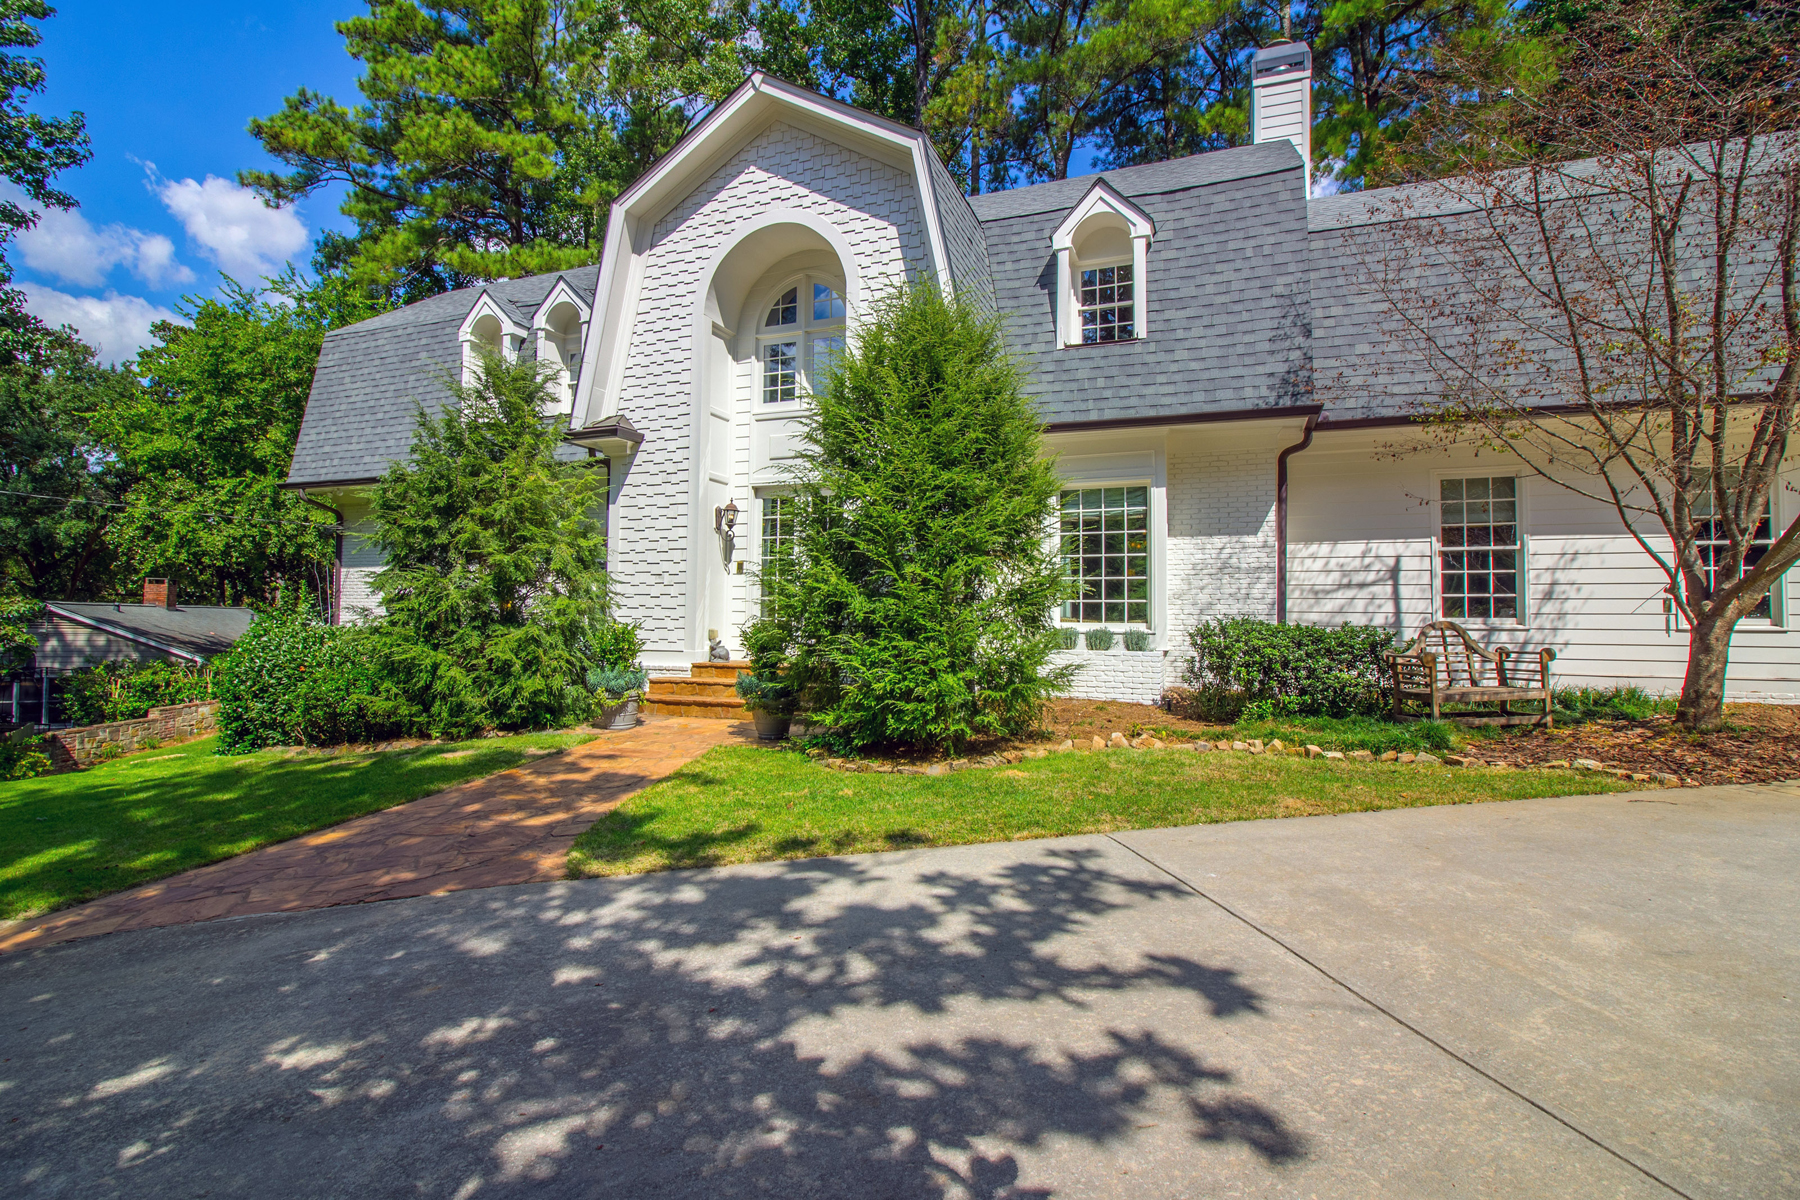 独户住宅 为 销售 在 Large Open Concept Home In One Of Buckhead's Best Neighborhoods 3115 E Wood Valley Road NW 亚特兰大, 乔治亚州, 30327 美国